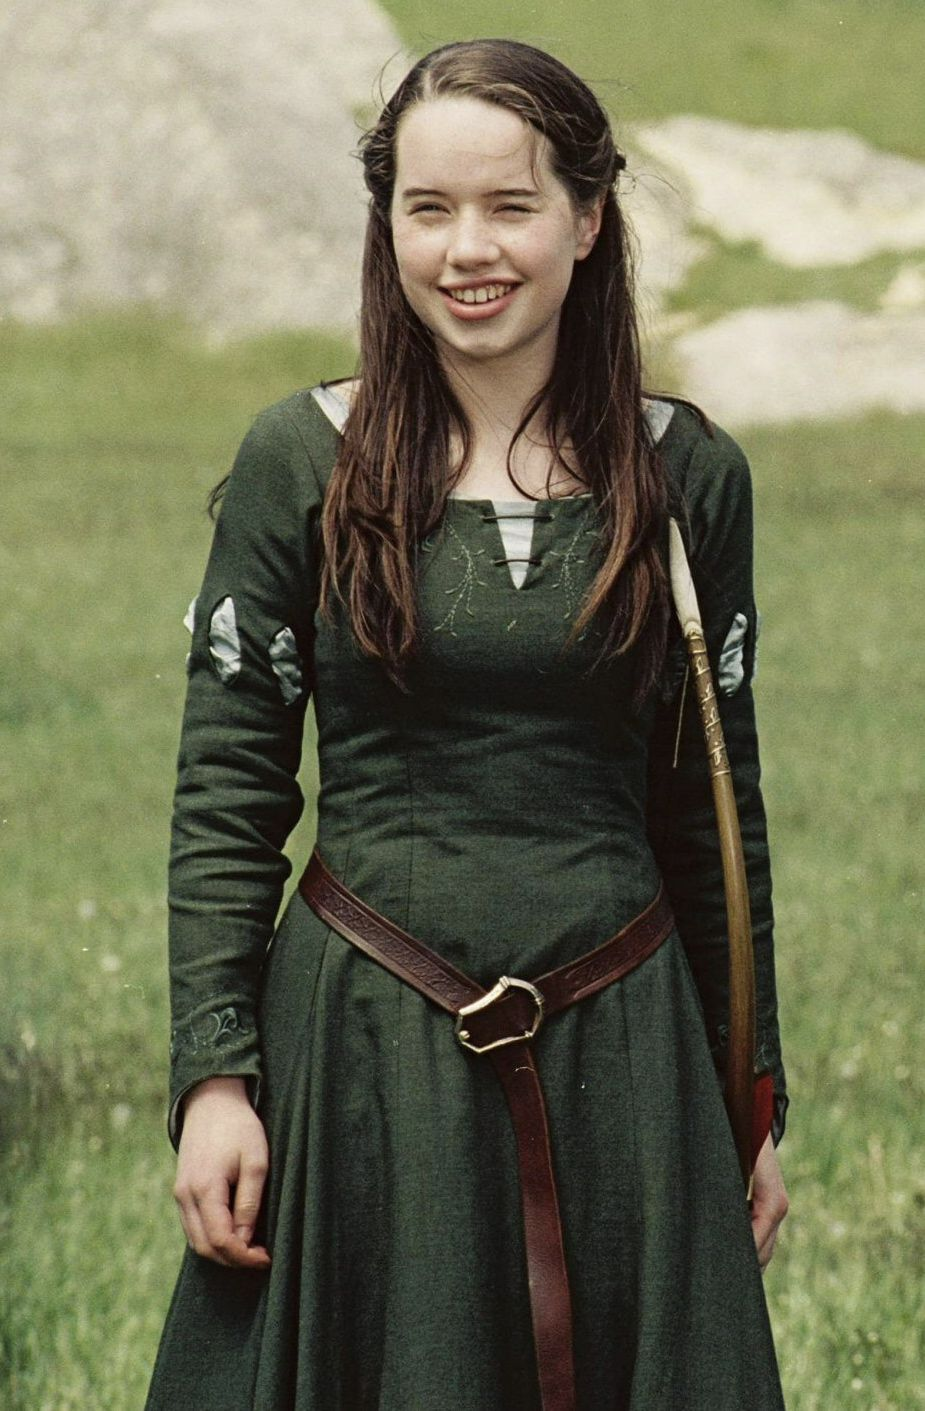 http://www.angelfire.com/oz/belle87/images/Narnia/susanarchery ...